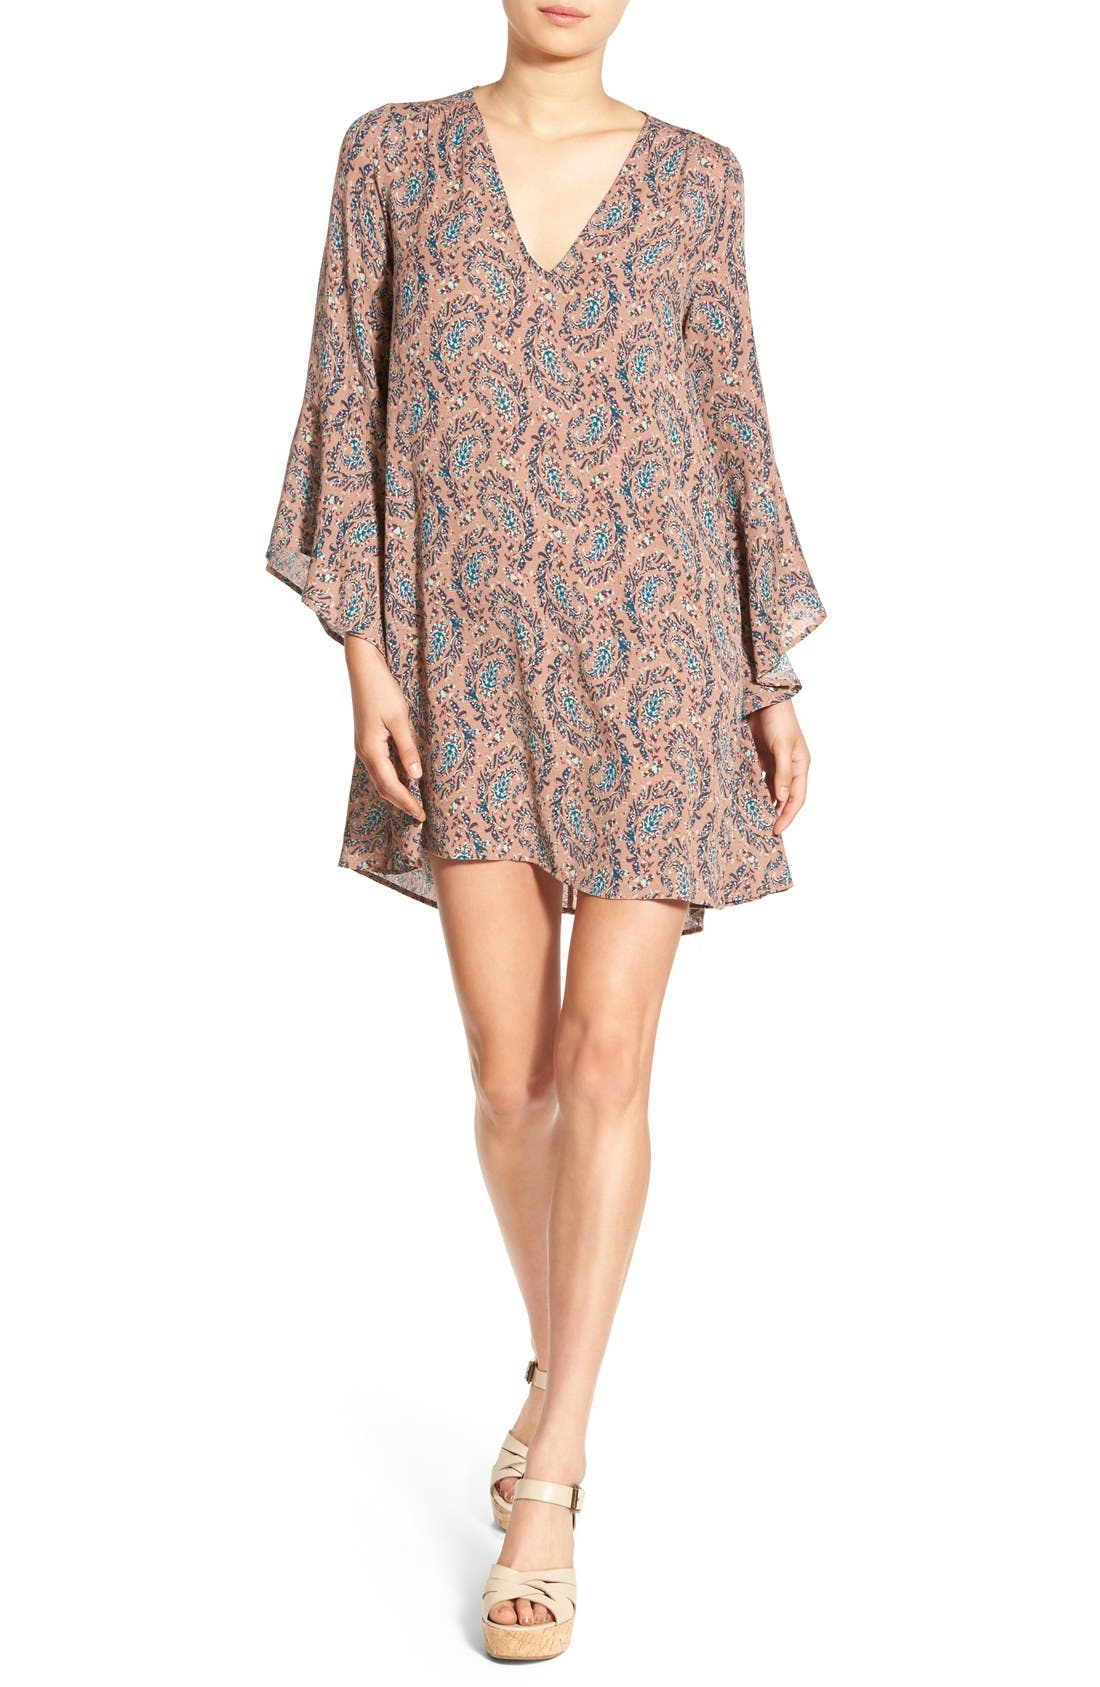 Alternate Image 1 Selected - Lush 'Whitney' Bell Sleeve Woven Shift Dress